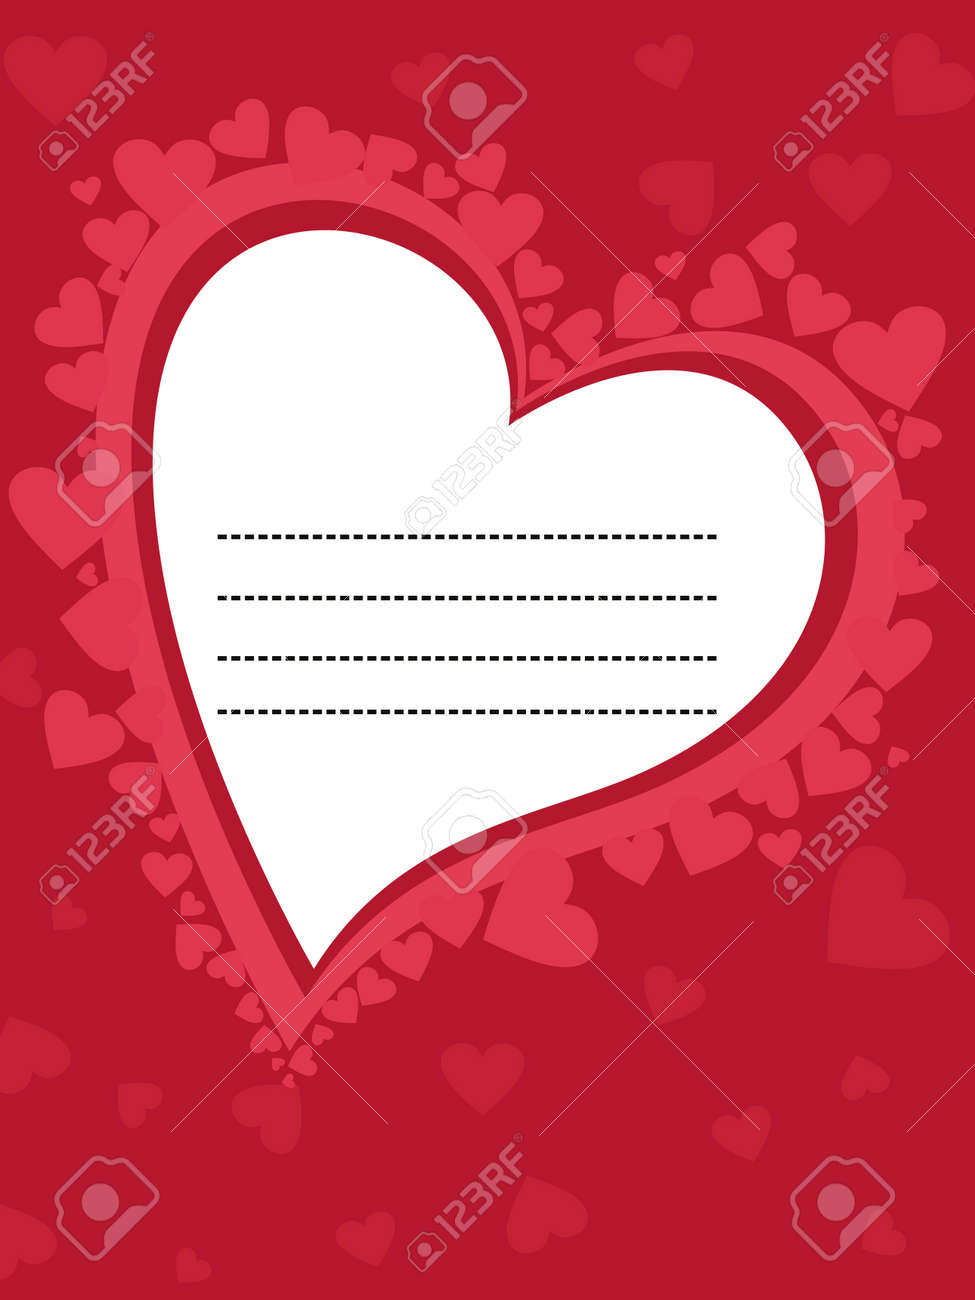 abstract romantic heart theme greeting card vector illustration